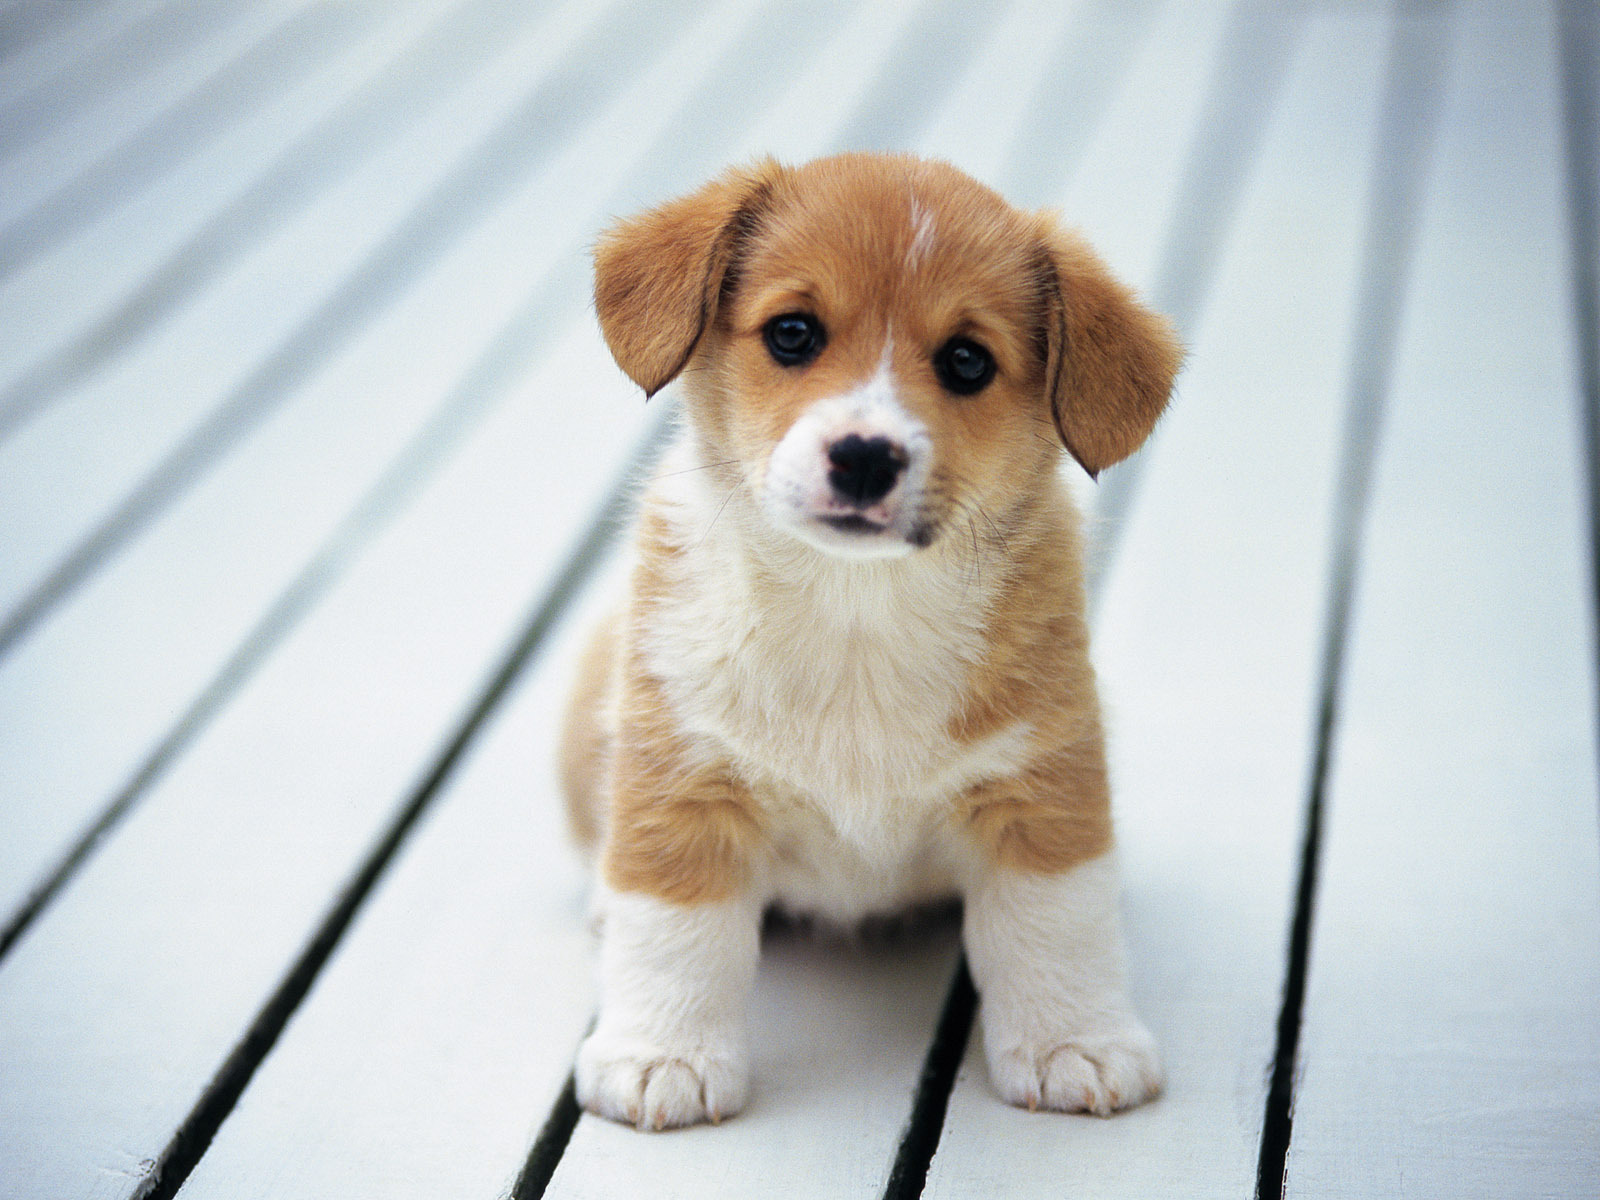 wallpaper Cute Puppy Wallpapers hd wallpaper background desktop 1600x1200